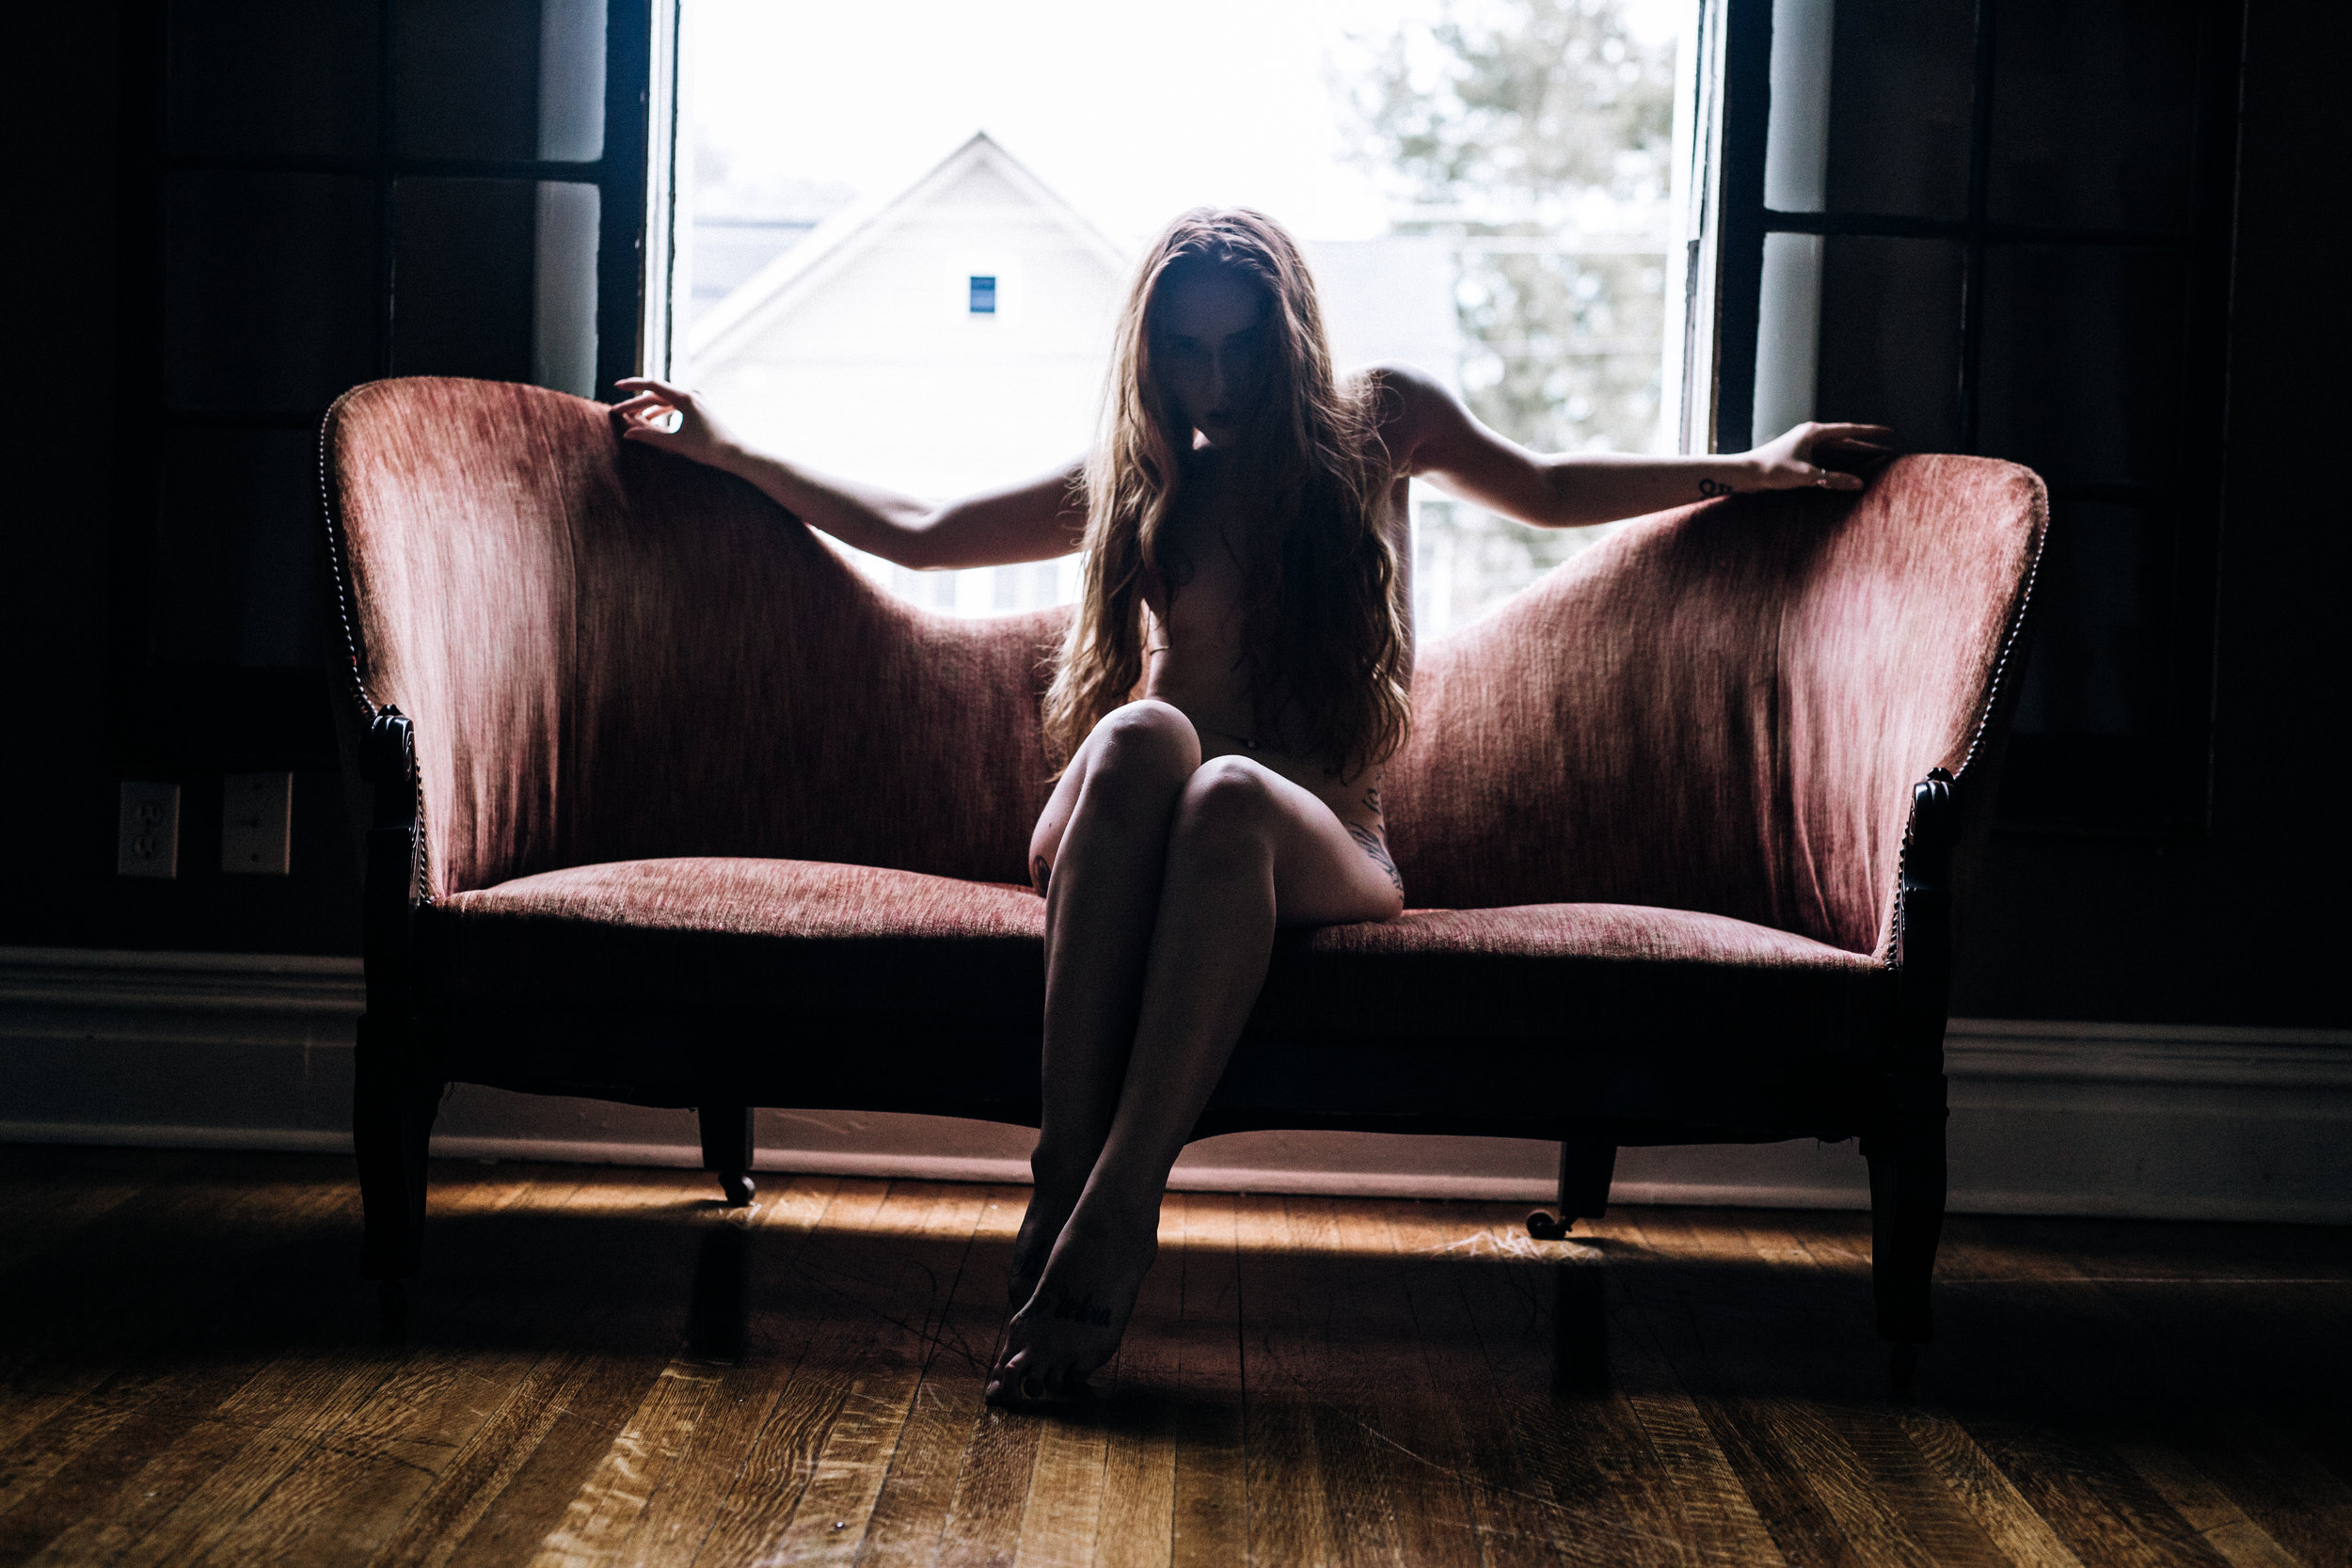 Lilith in Chattanooga - NaturallyBoudoir - April 1 2018-4757.jpg